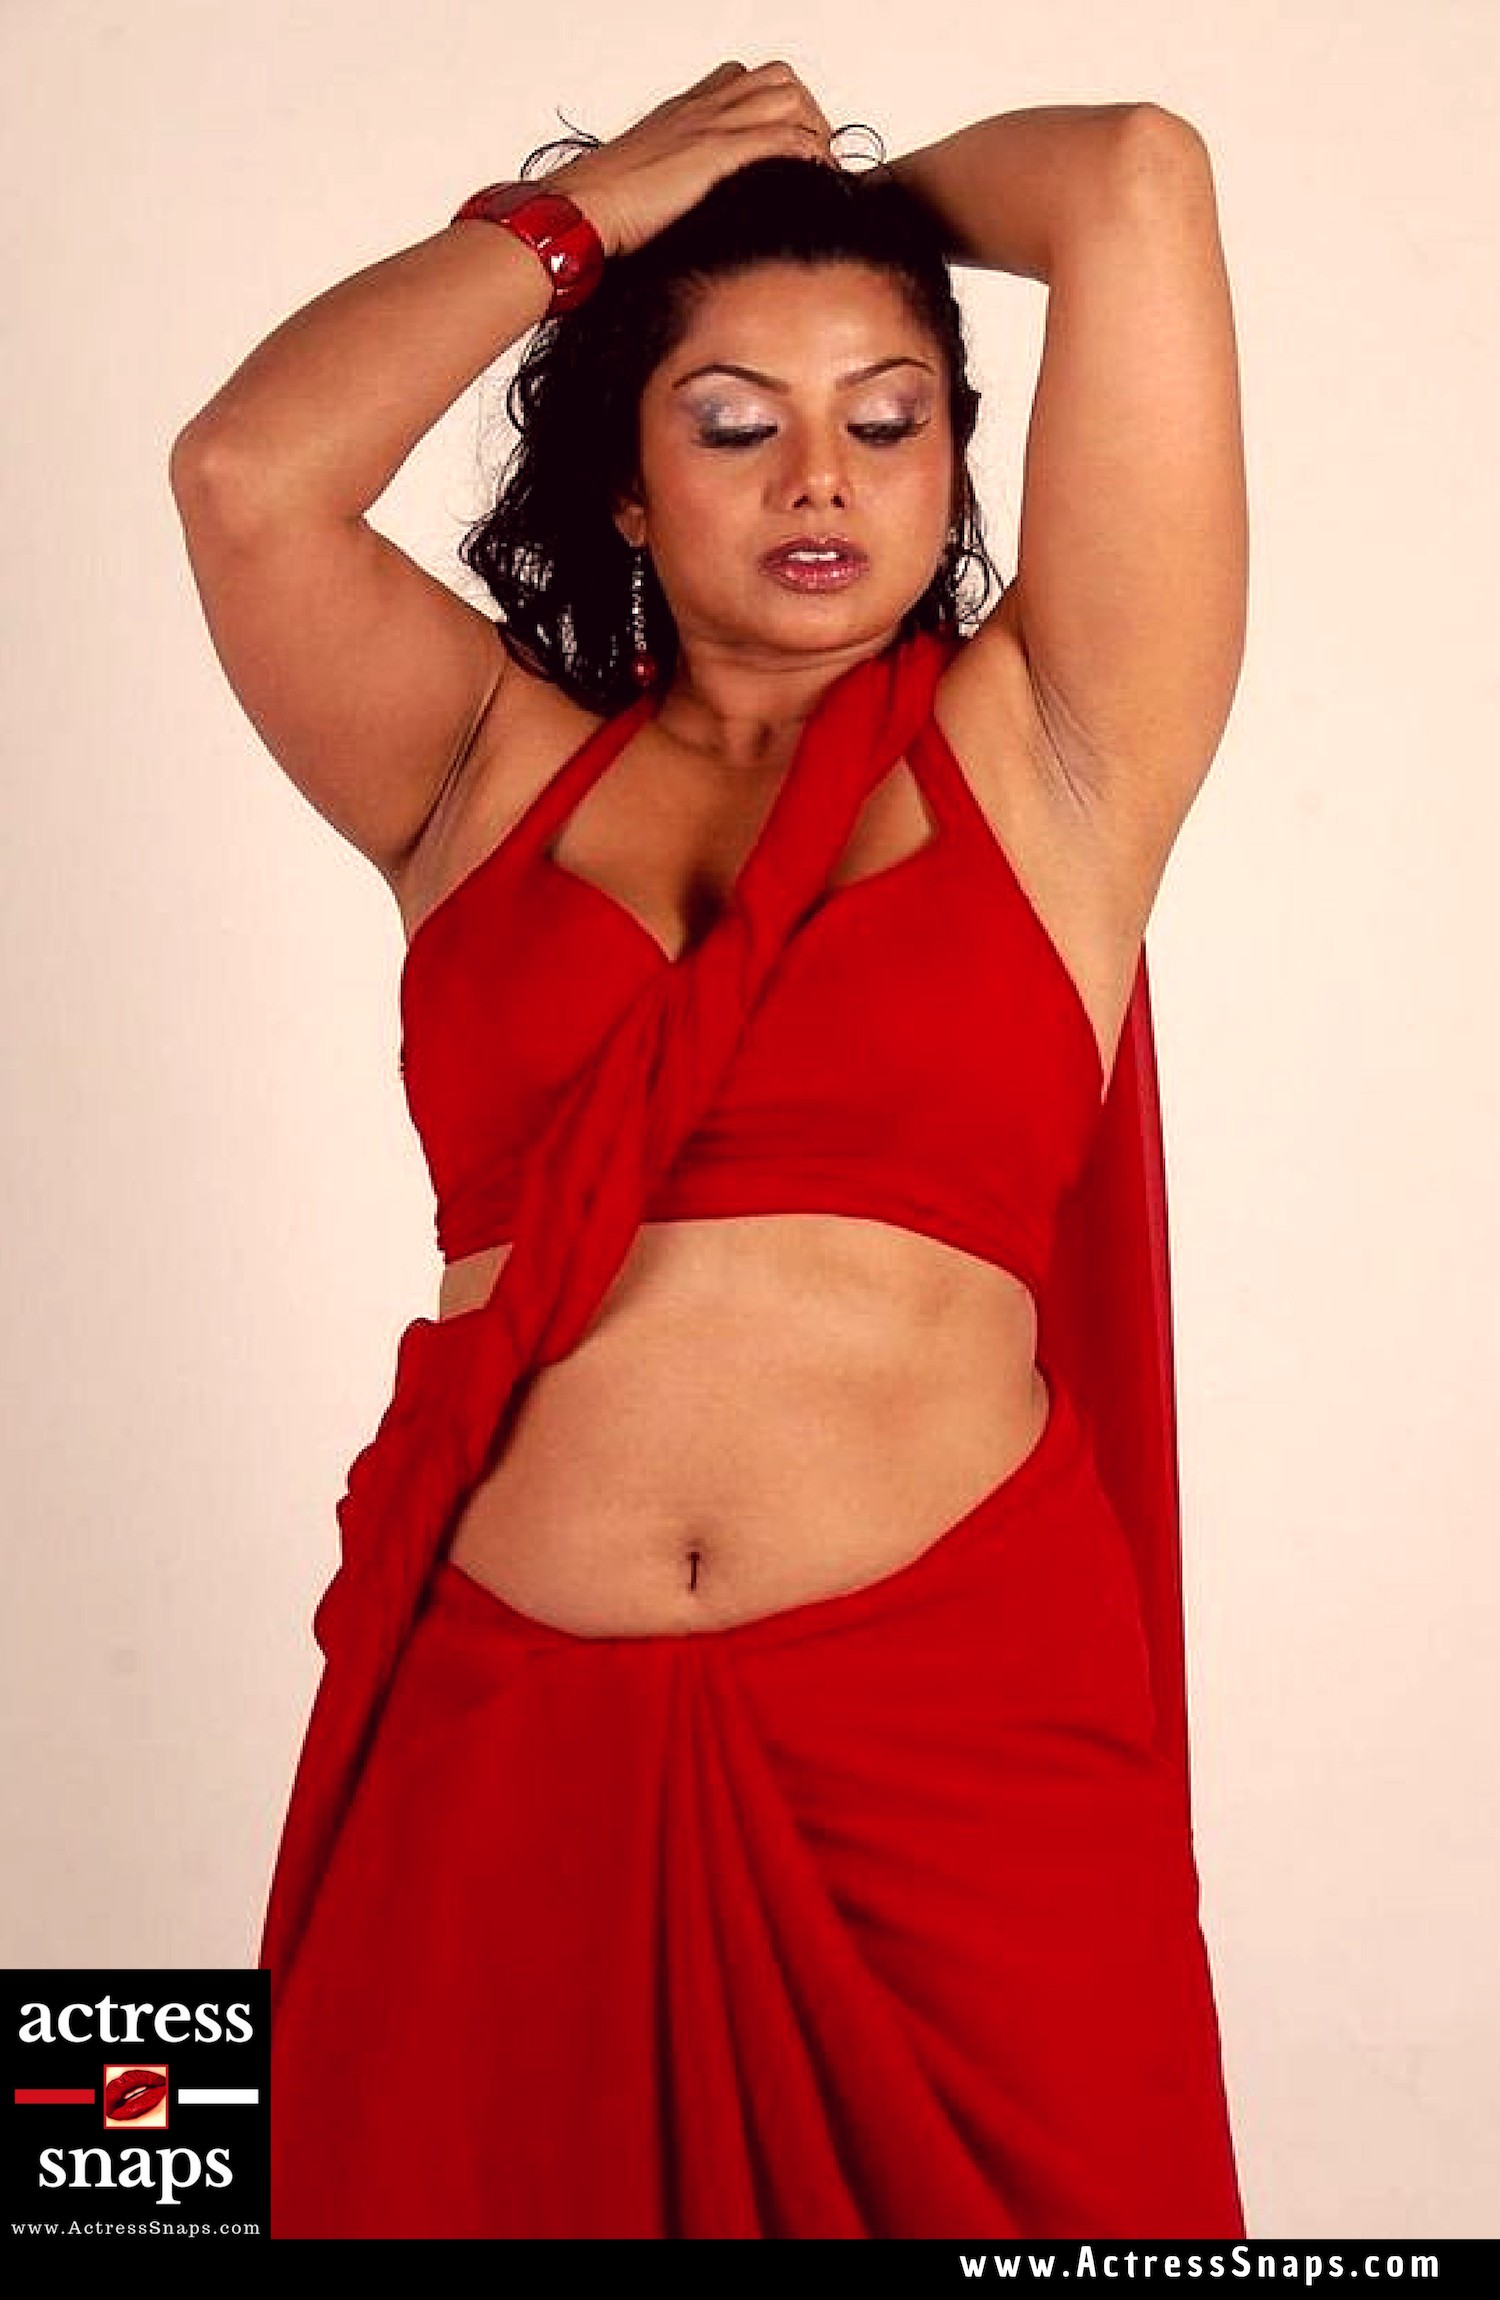 Hot & Sexy Swathi Varma Photos - Sexy Actress Pictures | Hot Actress Pictures - ActressSnaps.com